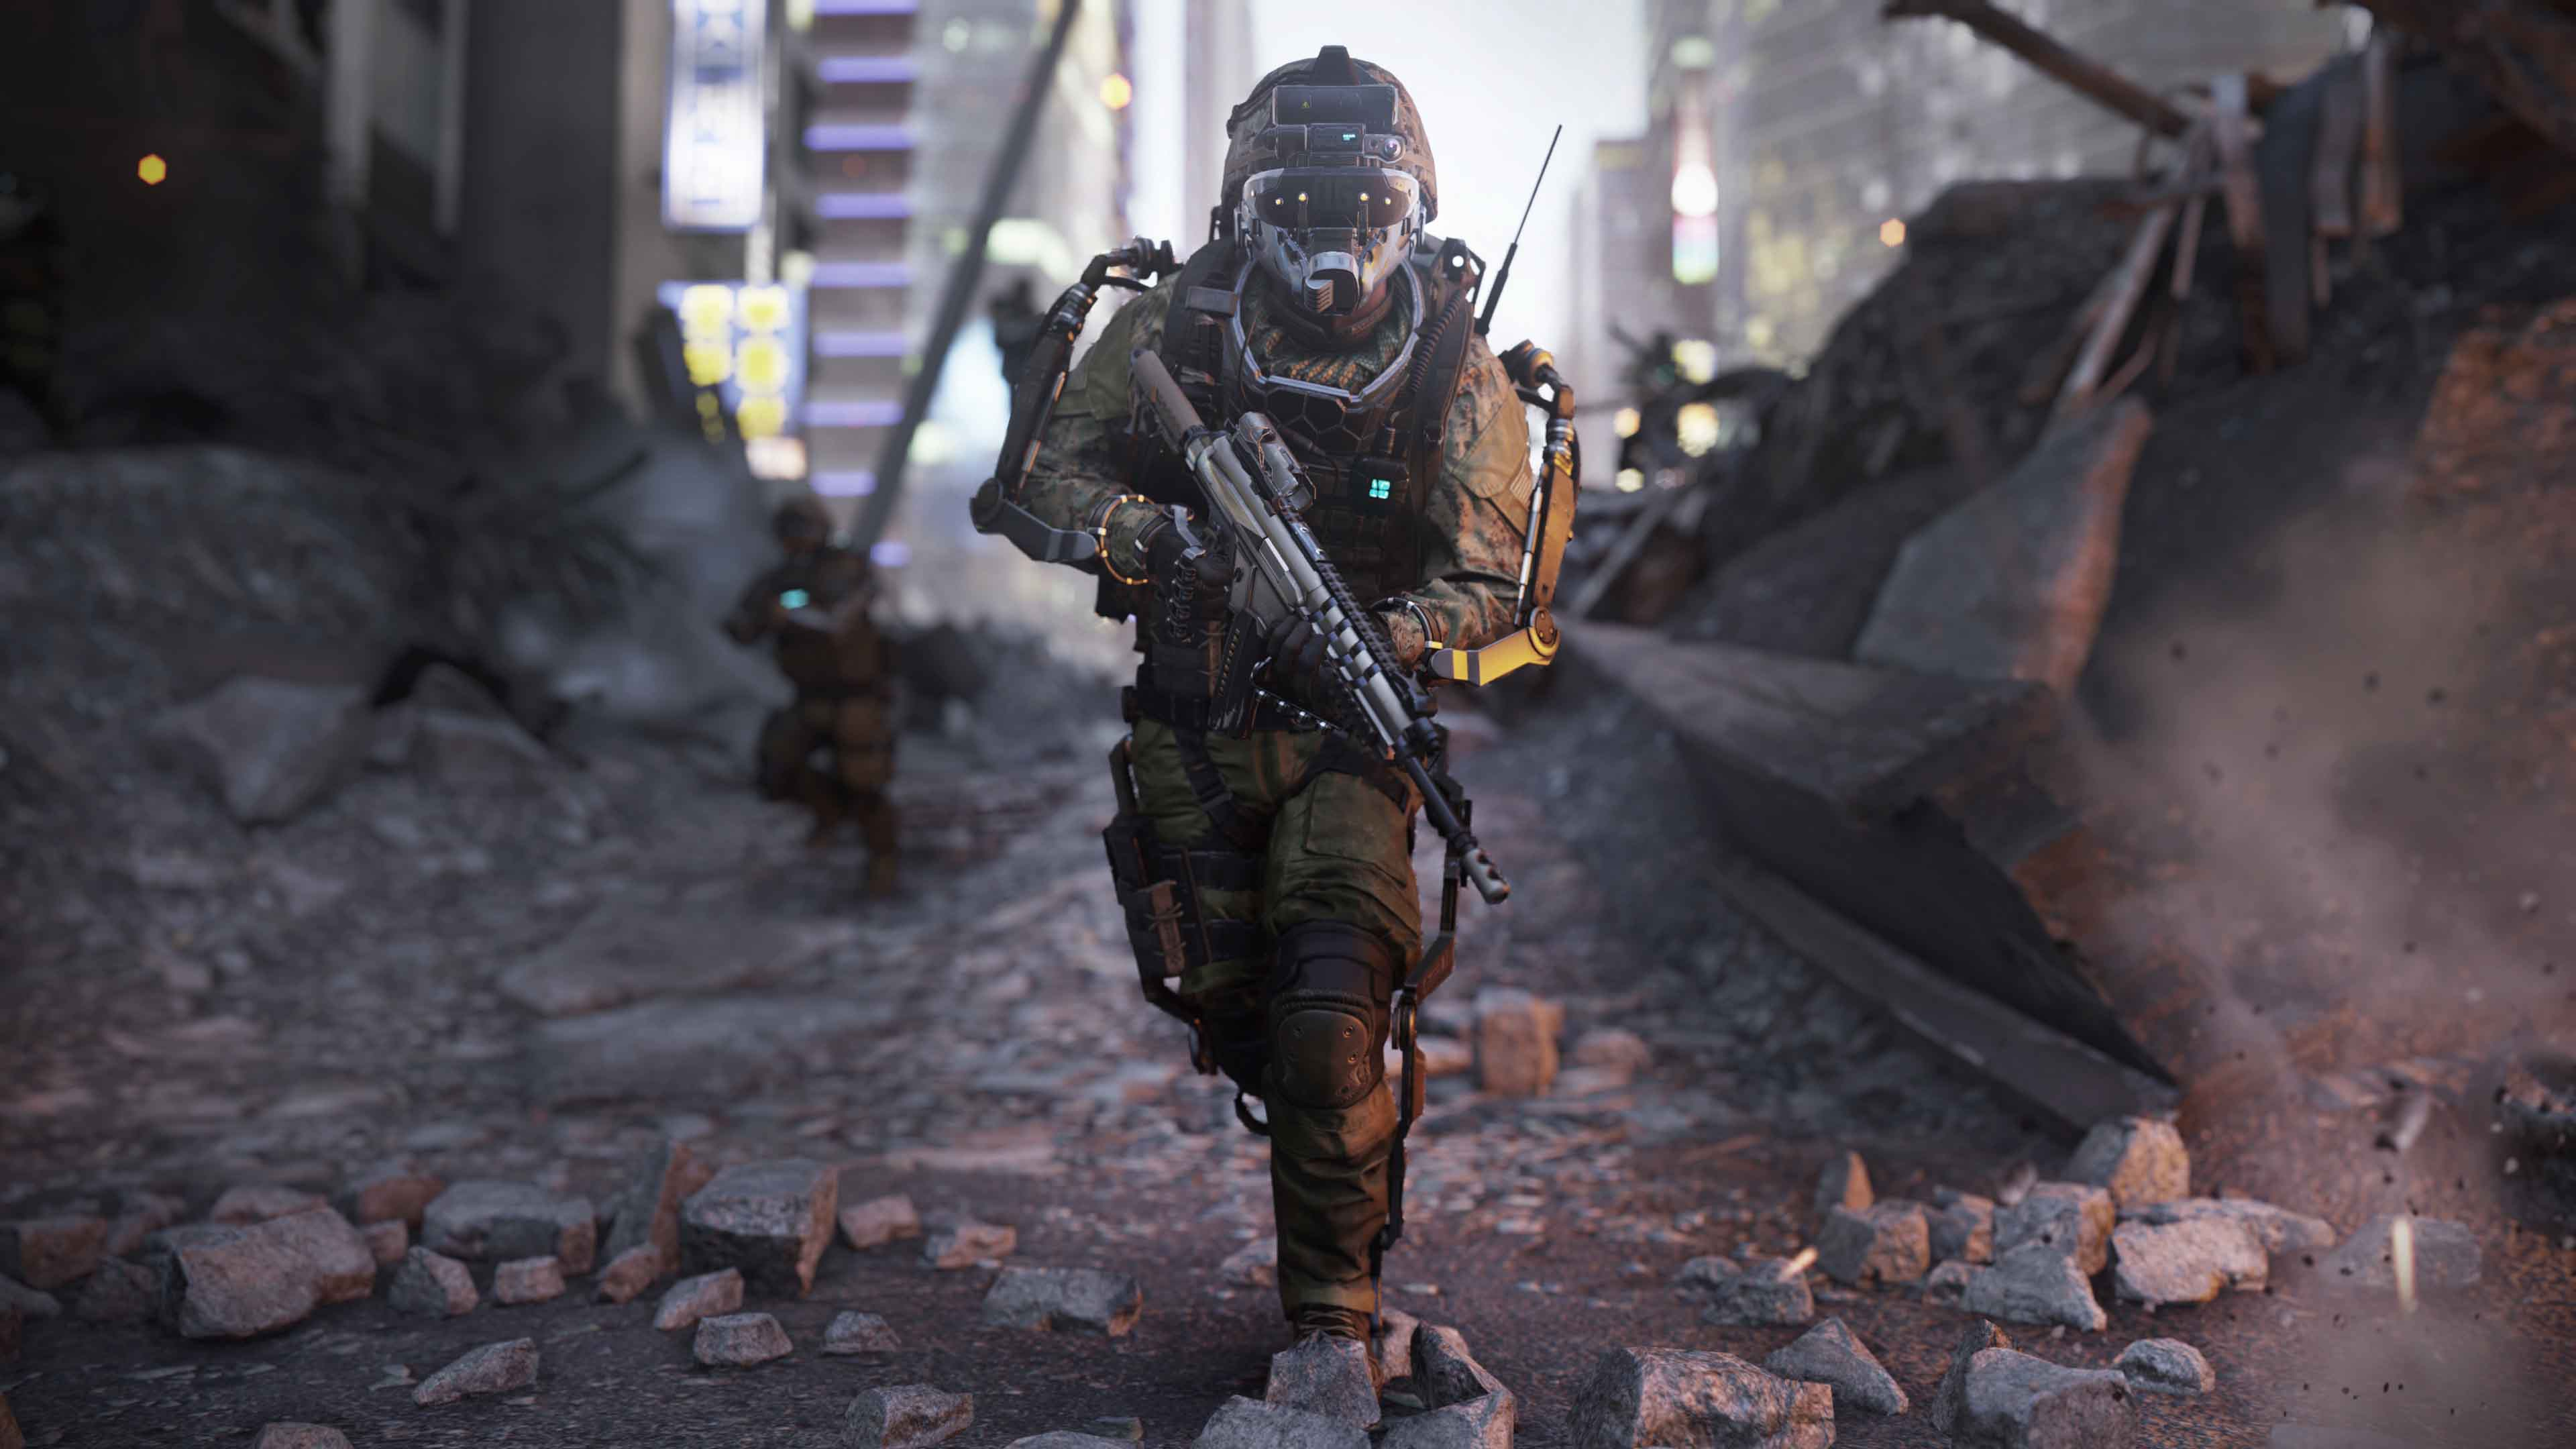 20 Huge Video Game Sequels Coming in 2015 - Overmental